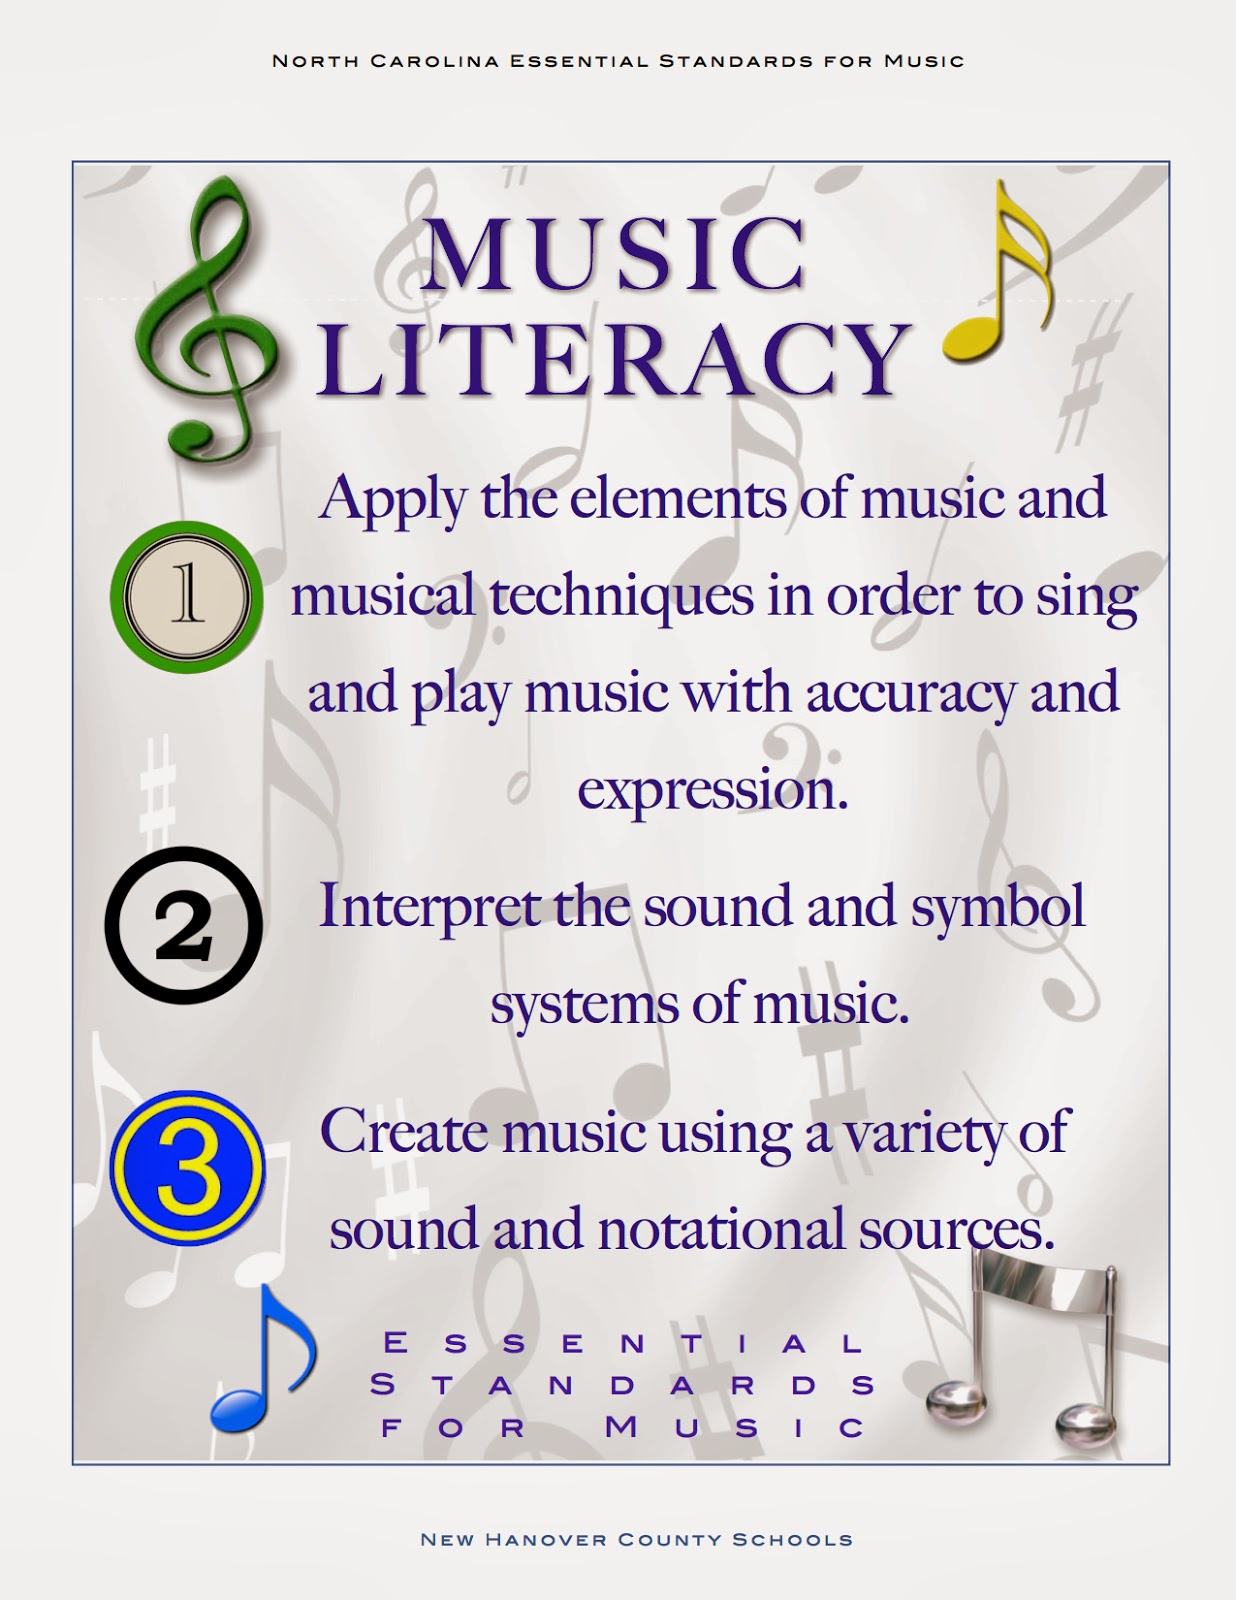 NHCS-Music Education: NC Music Standards Posters